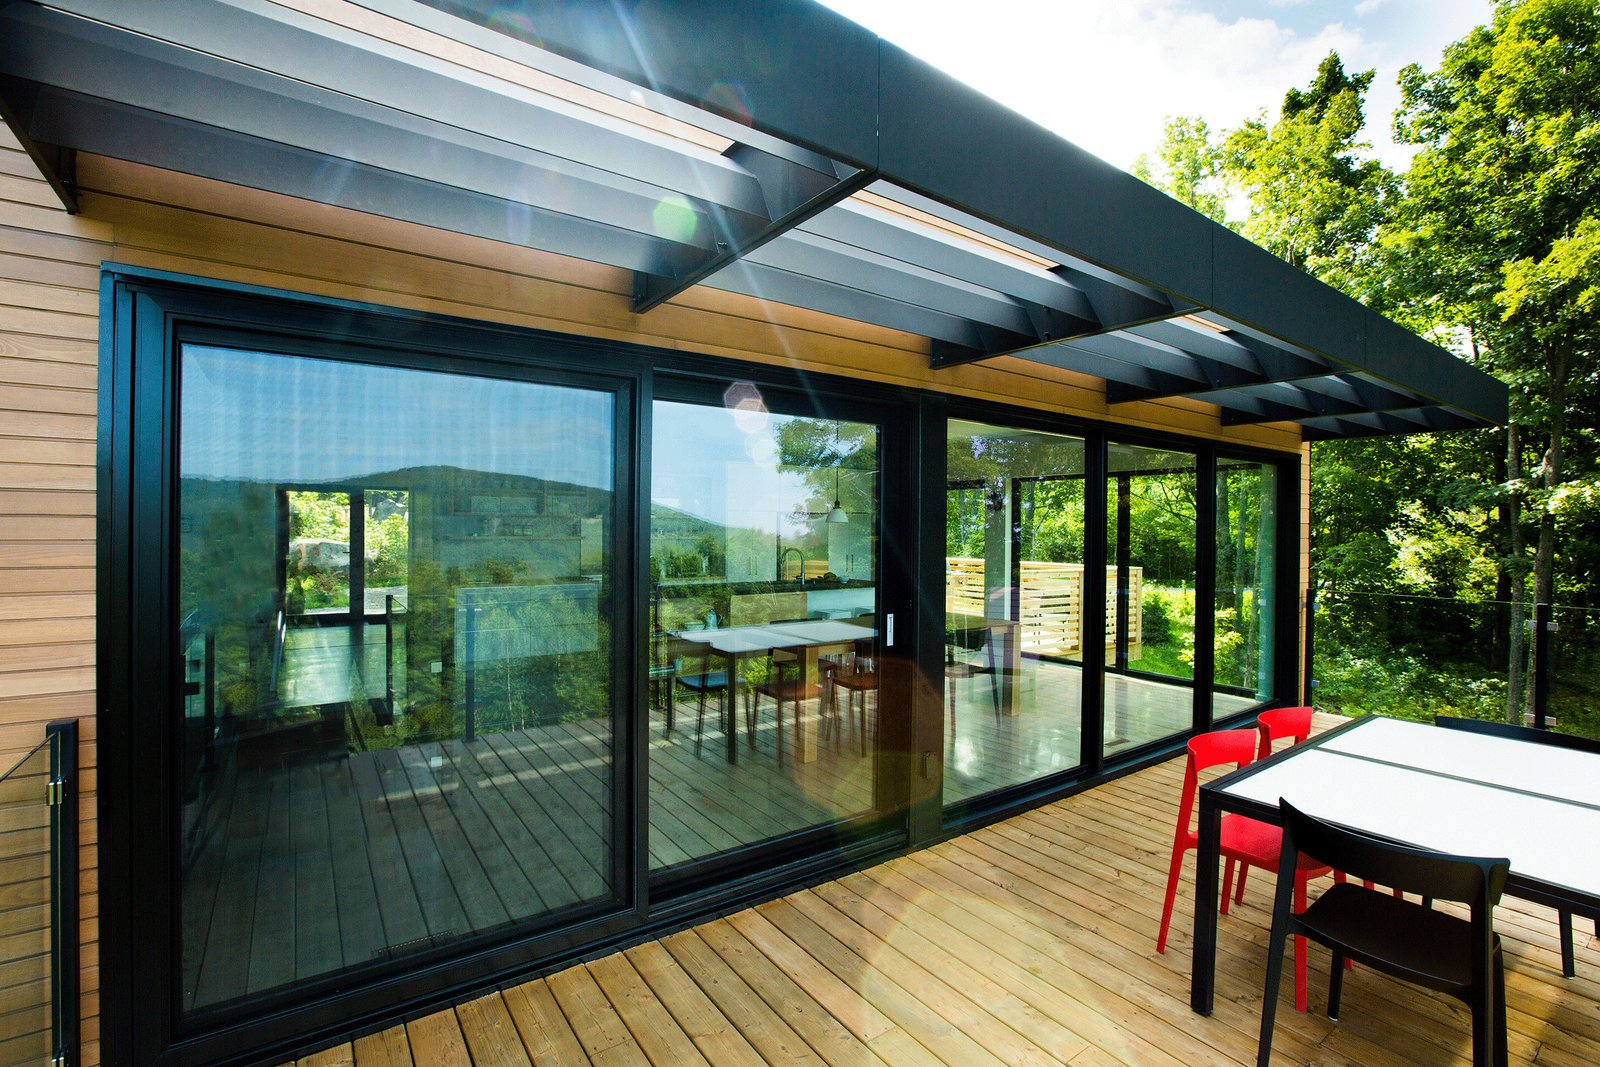 Tagged: Outdoor and Wood Patio, Porch, Deck.  The Desjardins Residence by BONE Structure